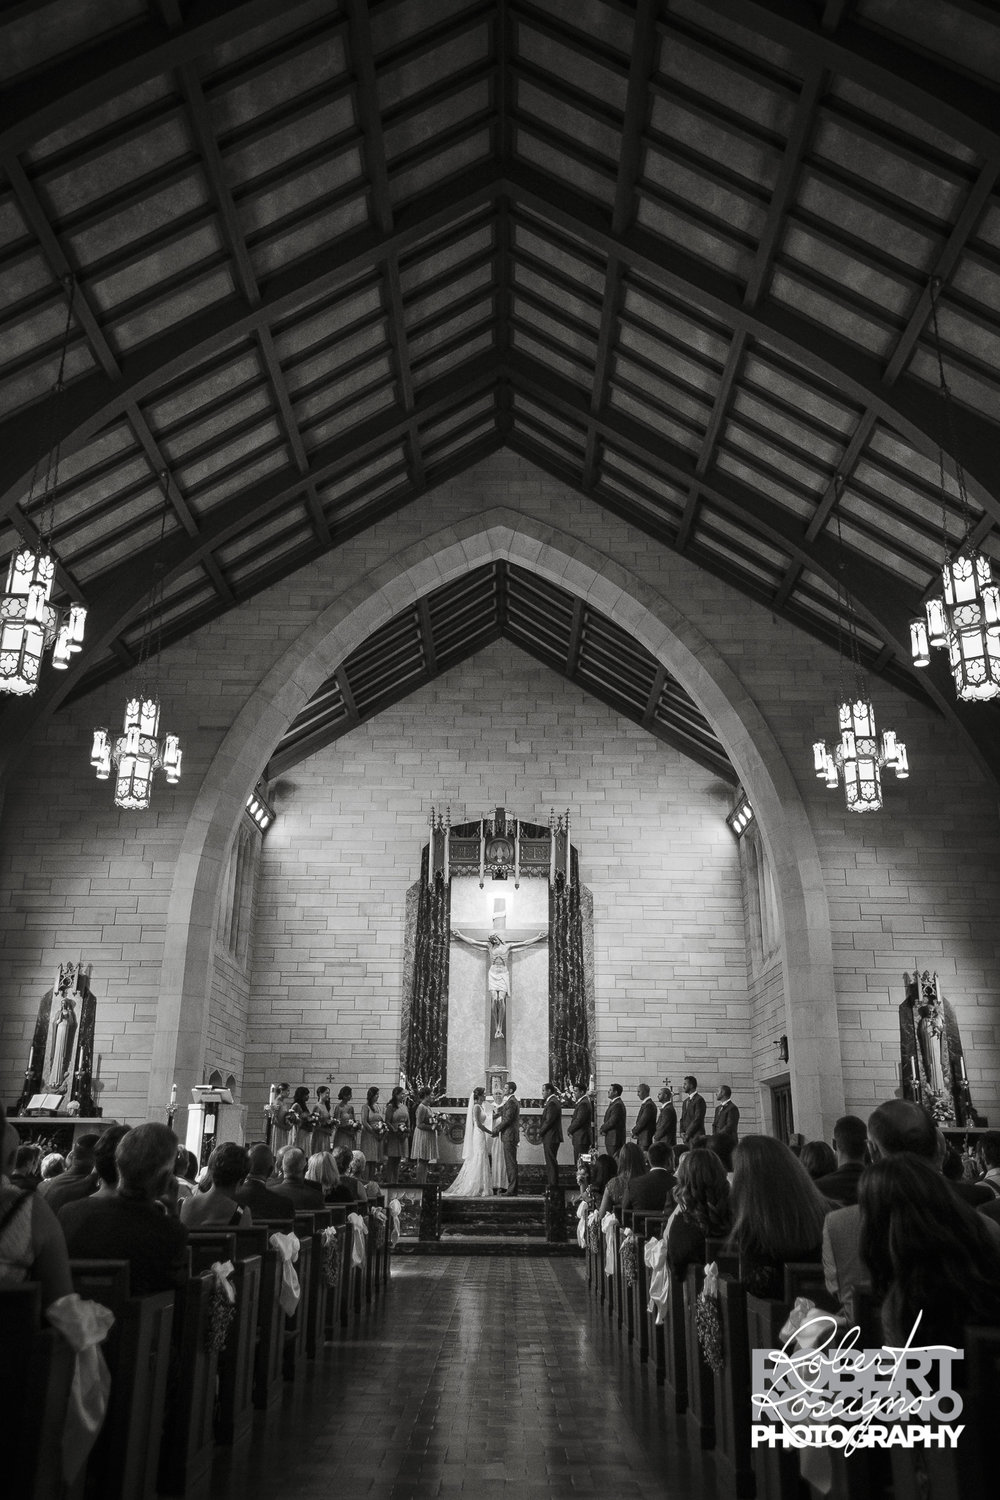 robertroscignophotography_princeton_wedding_nj_090416_010.jpg